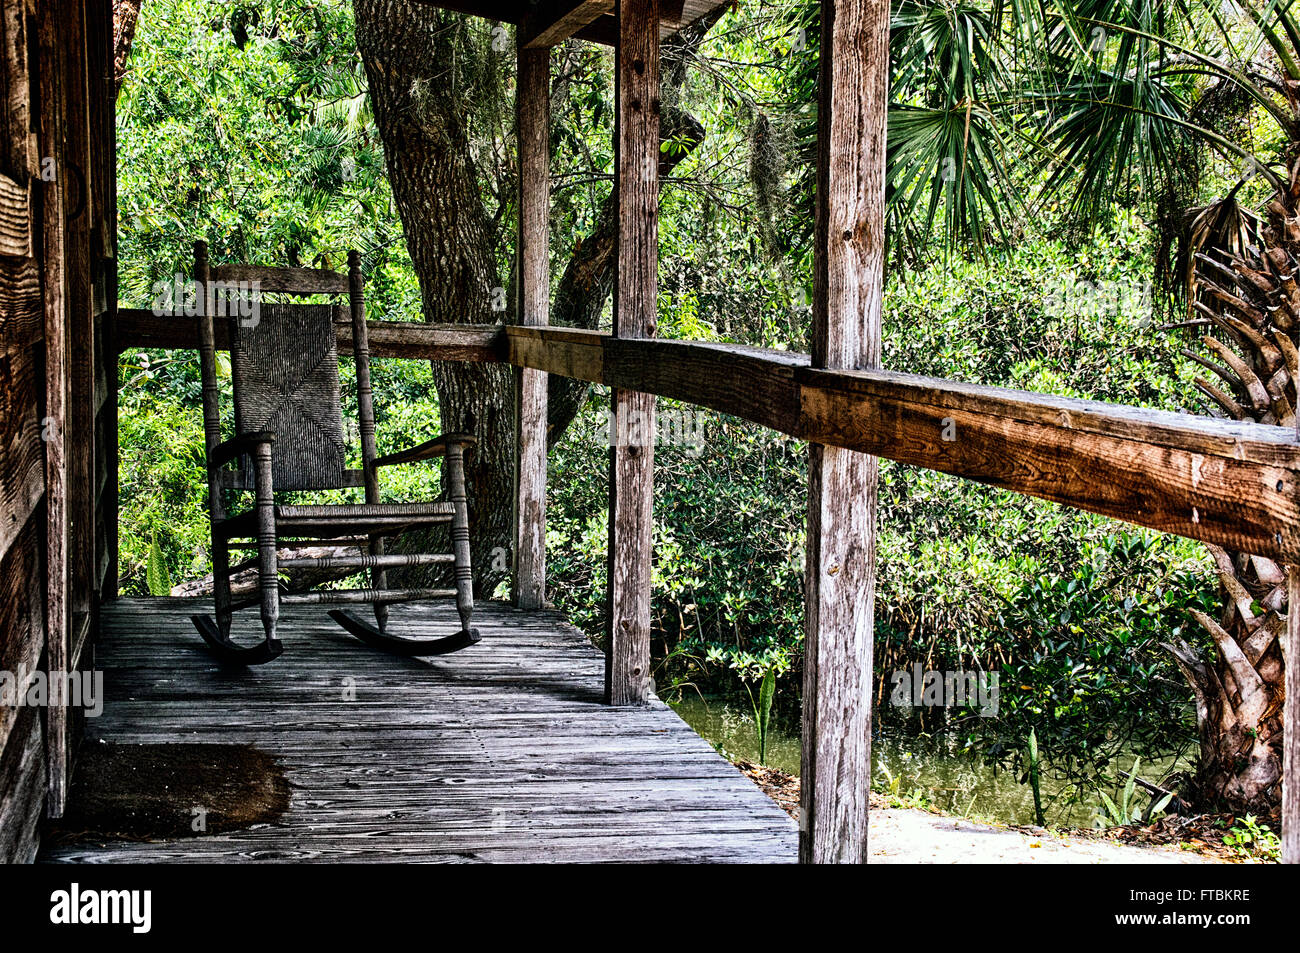 Looking across old wooden porch towards an empty rocking chair with wicker back in tropical estero florida setting. Koreshan State park & Looking across old wooden porch towards an empty rocking chair with ...